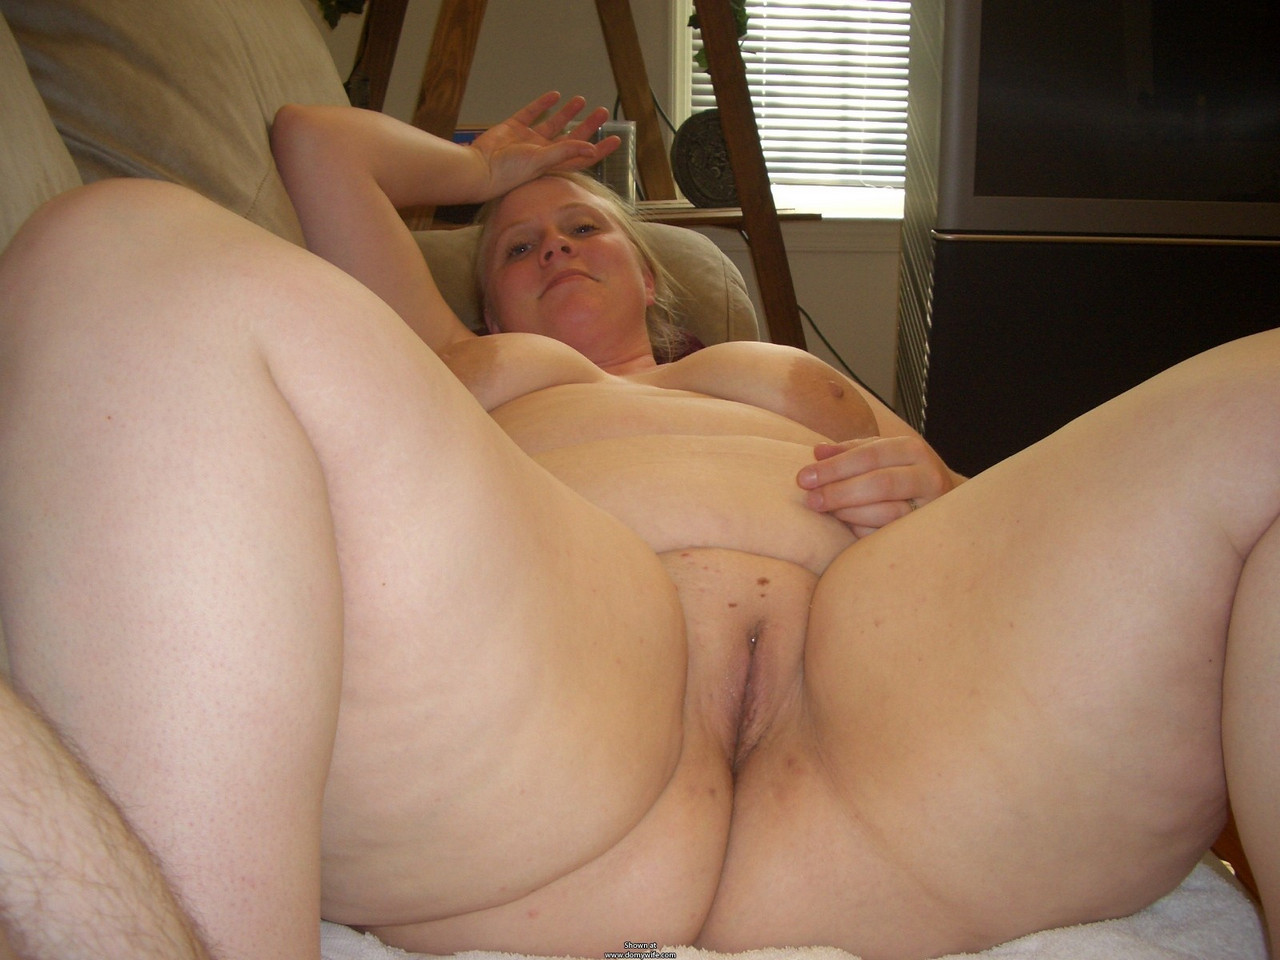 Thanks Bbw anal only chubby assfucking you